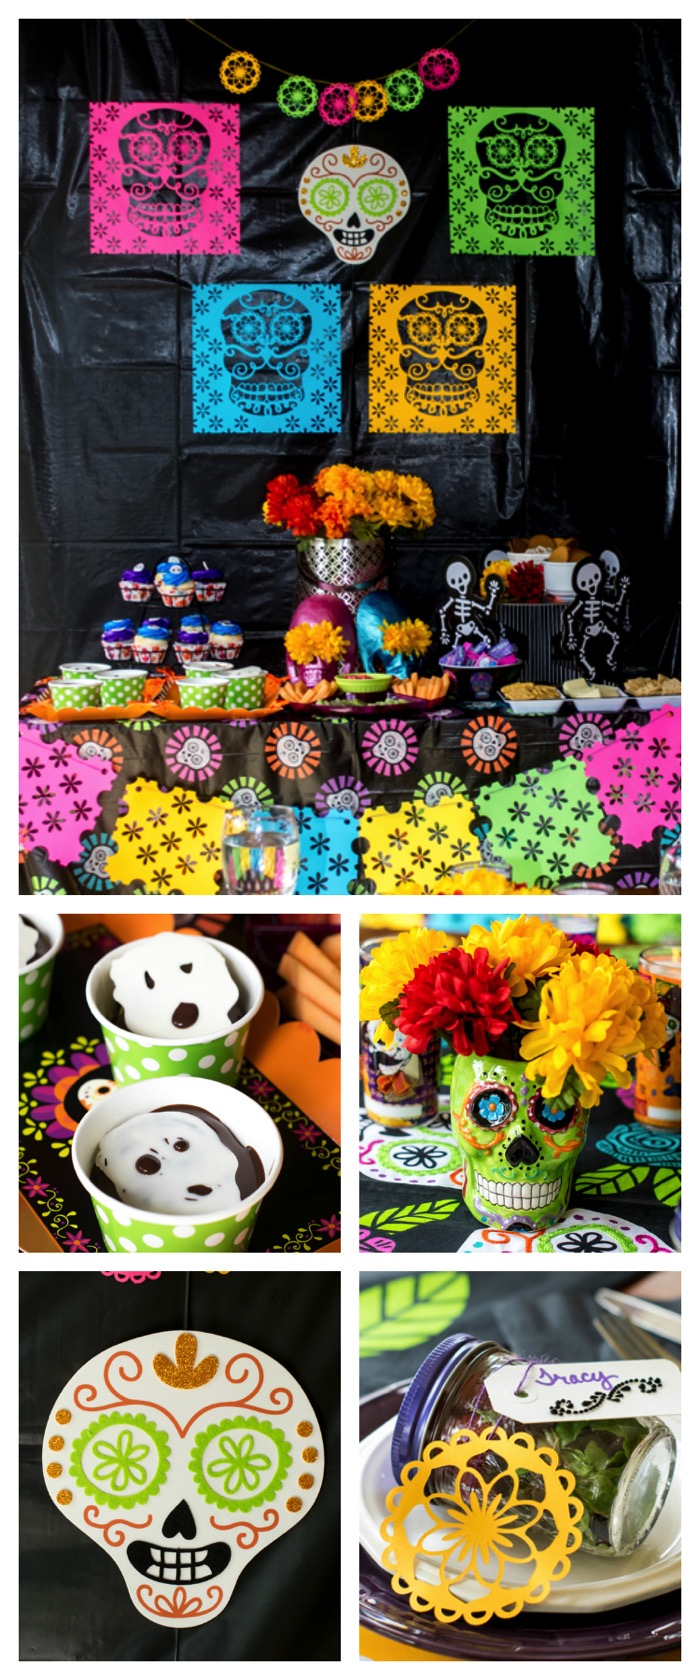 Looking for party ideas for Dia de los Muertos? This Day of the Dead Dinner Party is packed full of ideas. From recipes, to table settings, to crafts, you will have everything you need to throw a successful party!  #ad #CollectiveBias #CelebrateLosMuertos #DayoftheDead